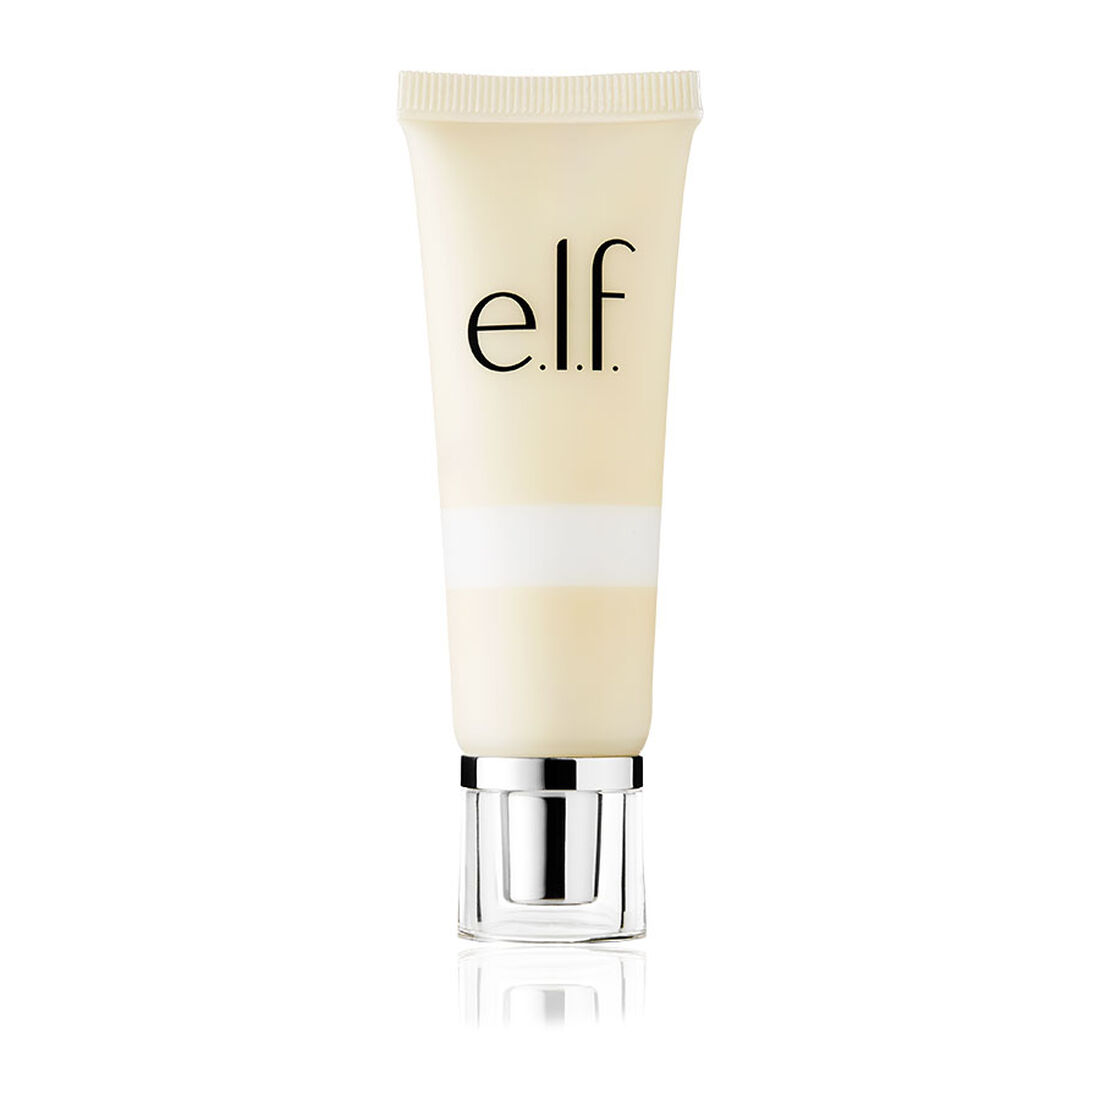 e.l.f. Cosmetics - Beautifully Bare Luminous Matte Makeup Primer